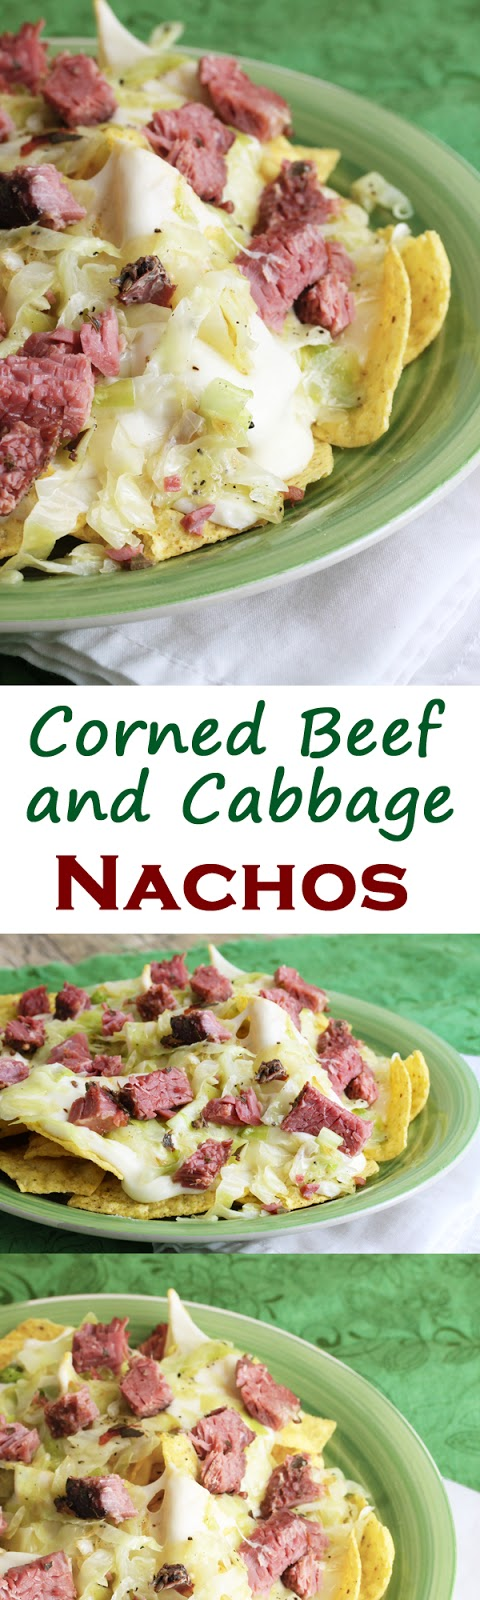 Corned Beef and Cabbage Nachos